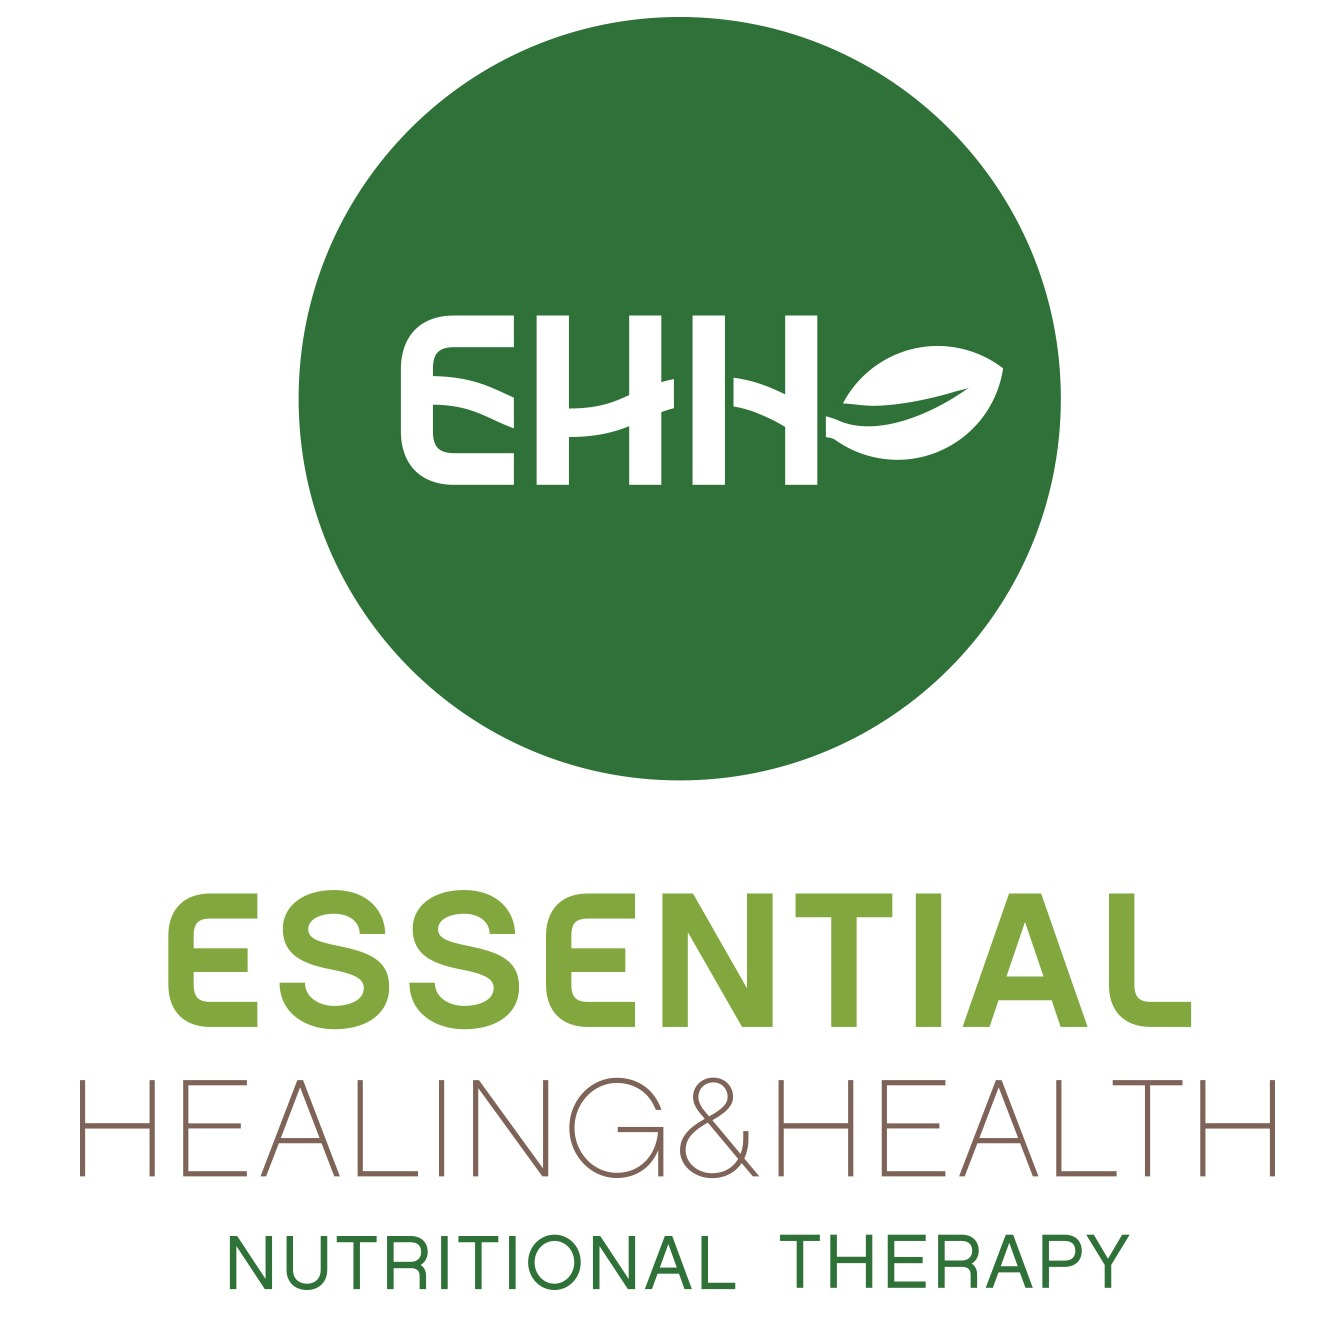 ESSENTIAL HEALING & HEALTH LIMITED